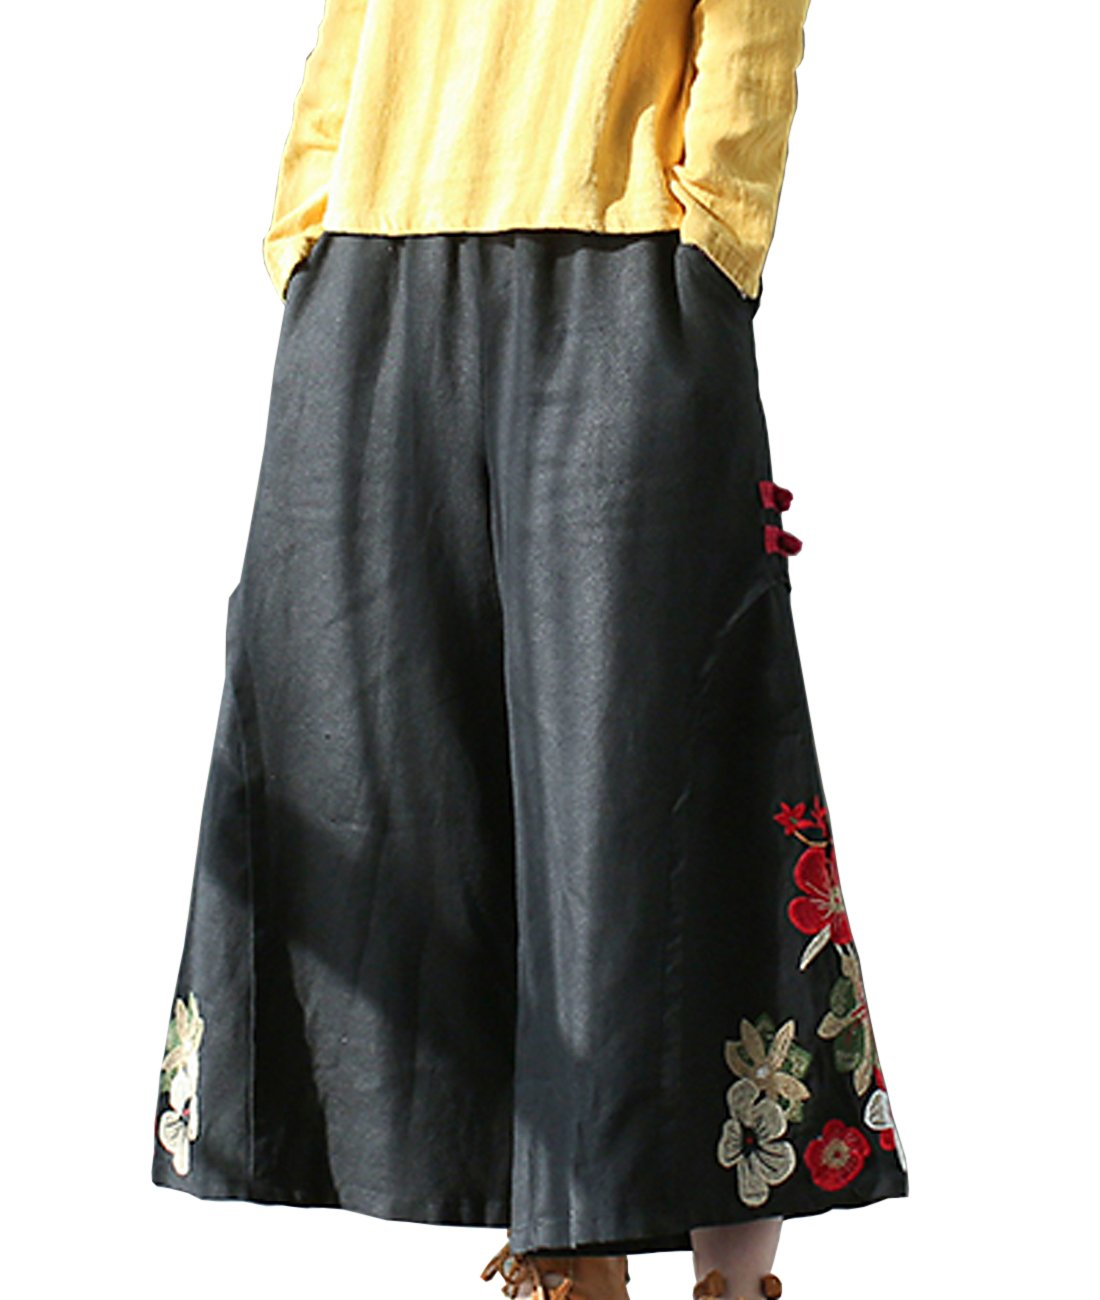 YESNO P45 Women Cropped Pants 100% Linen Casual Loose Wide Leg Ethnic Embroidery/Pockets (M, PM6 Black)